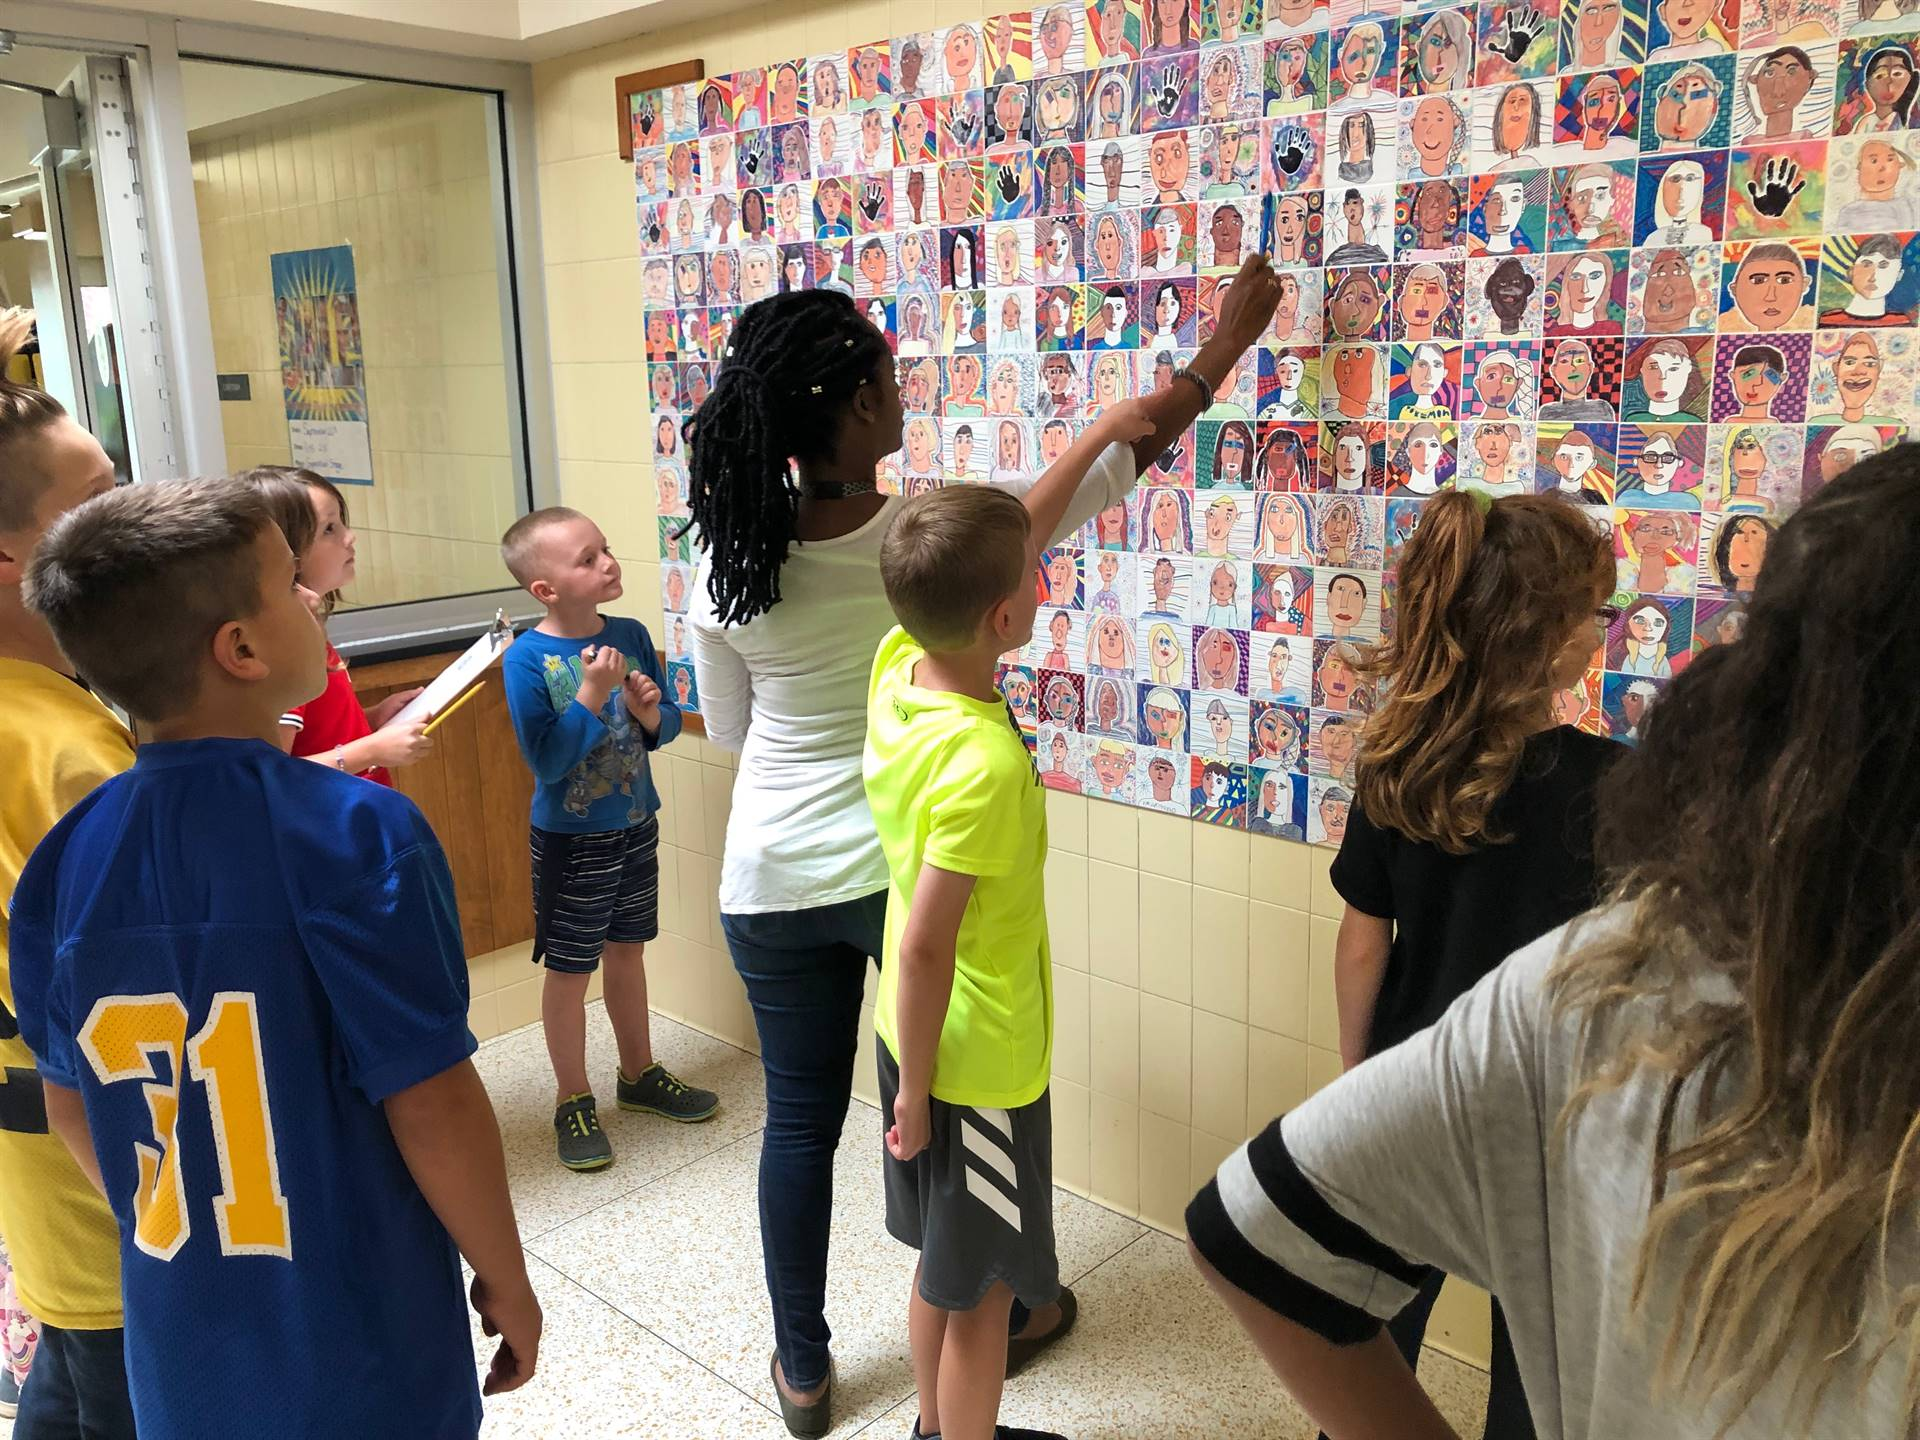 Counting faces for our school-wide scavenger hunt!